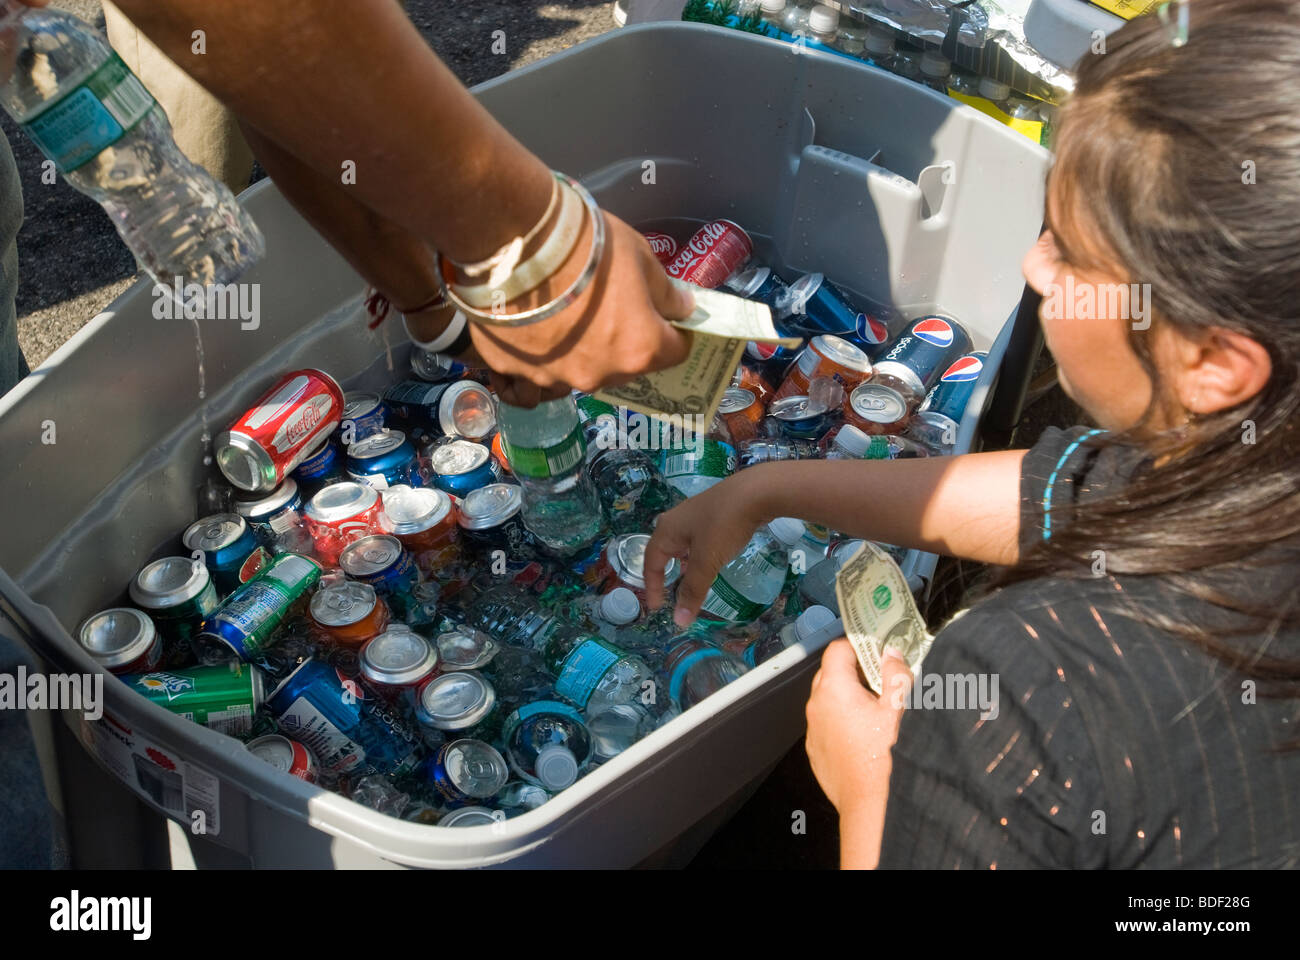 Cans of ice cold soda and water in a container of ice are sold by an entrepreneur at a street fair in New York Stock Photo